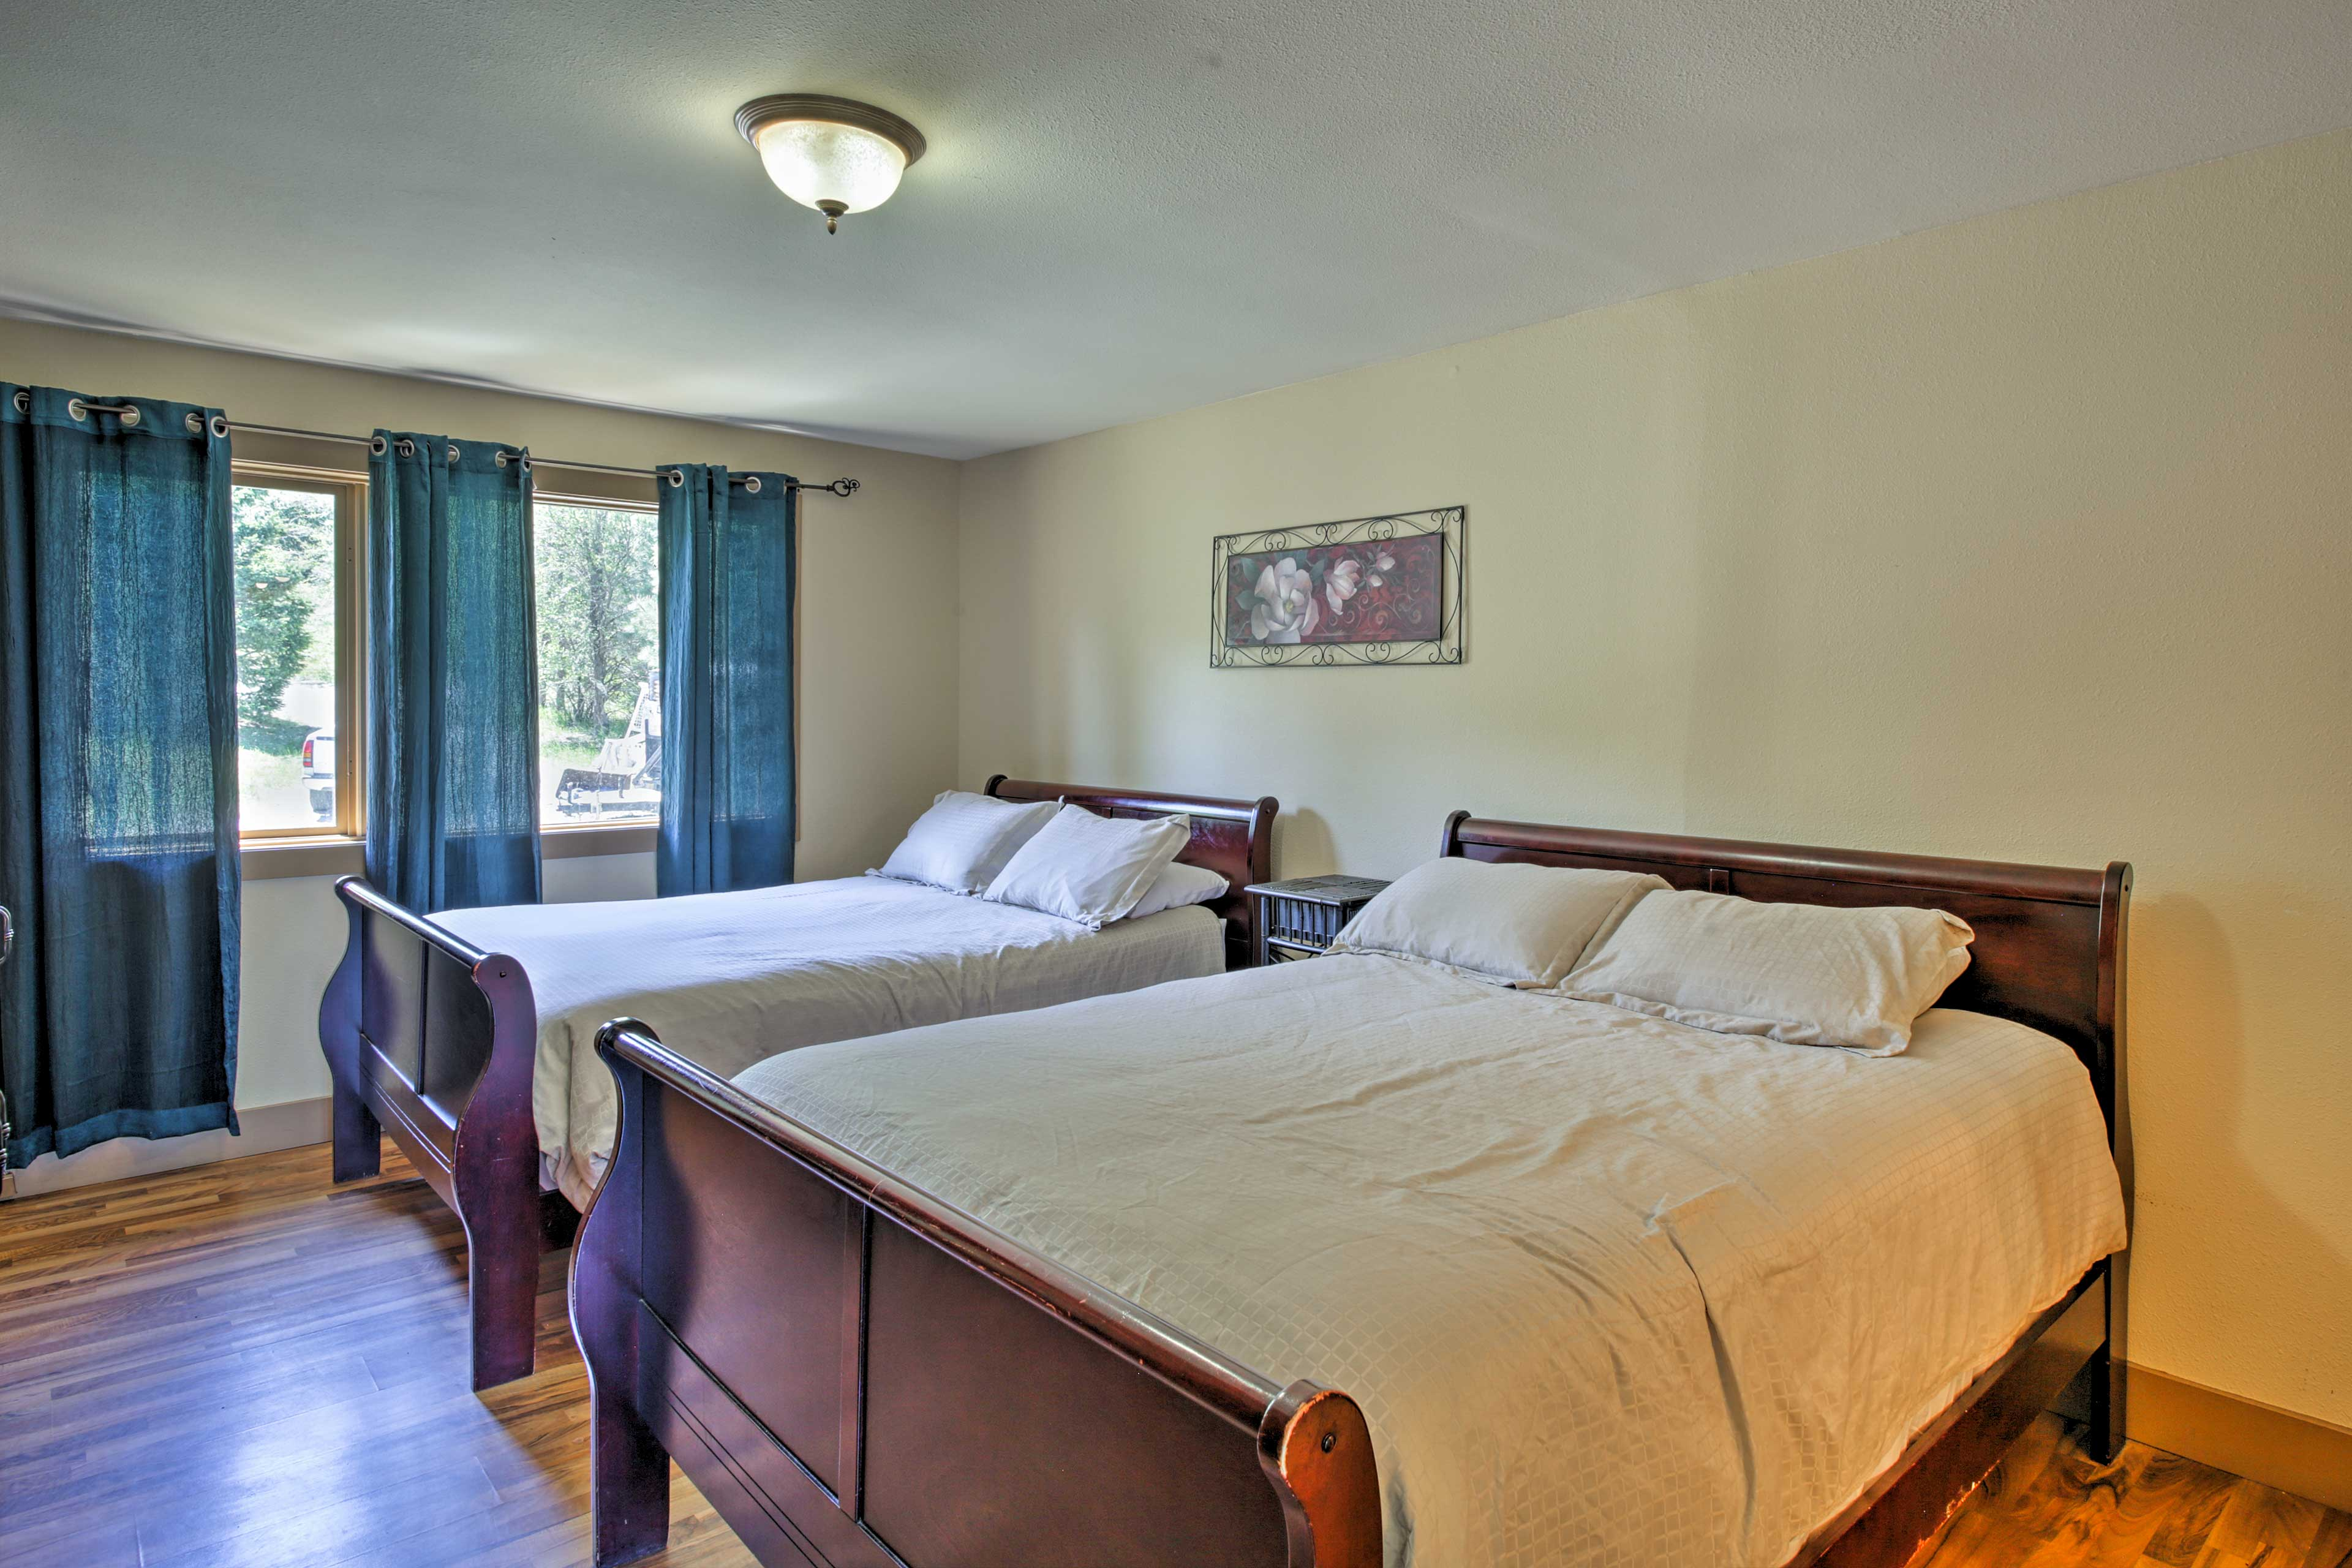 This bedroom has 2 queen beds and window views of the forested slopes.